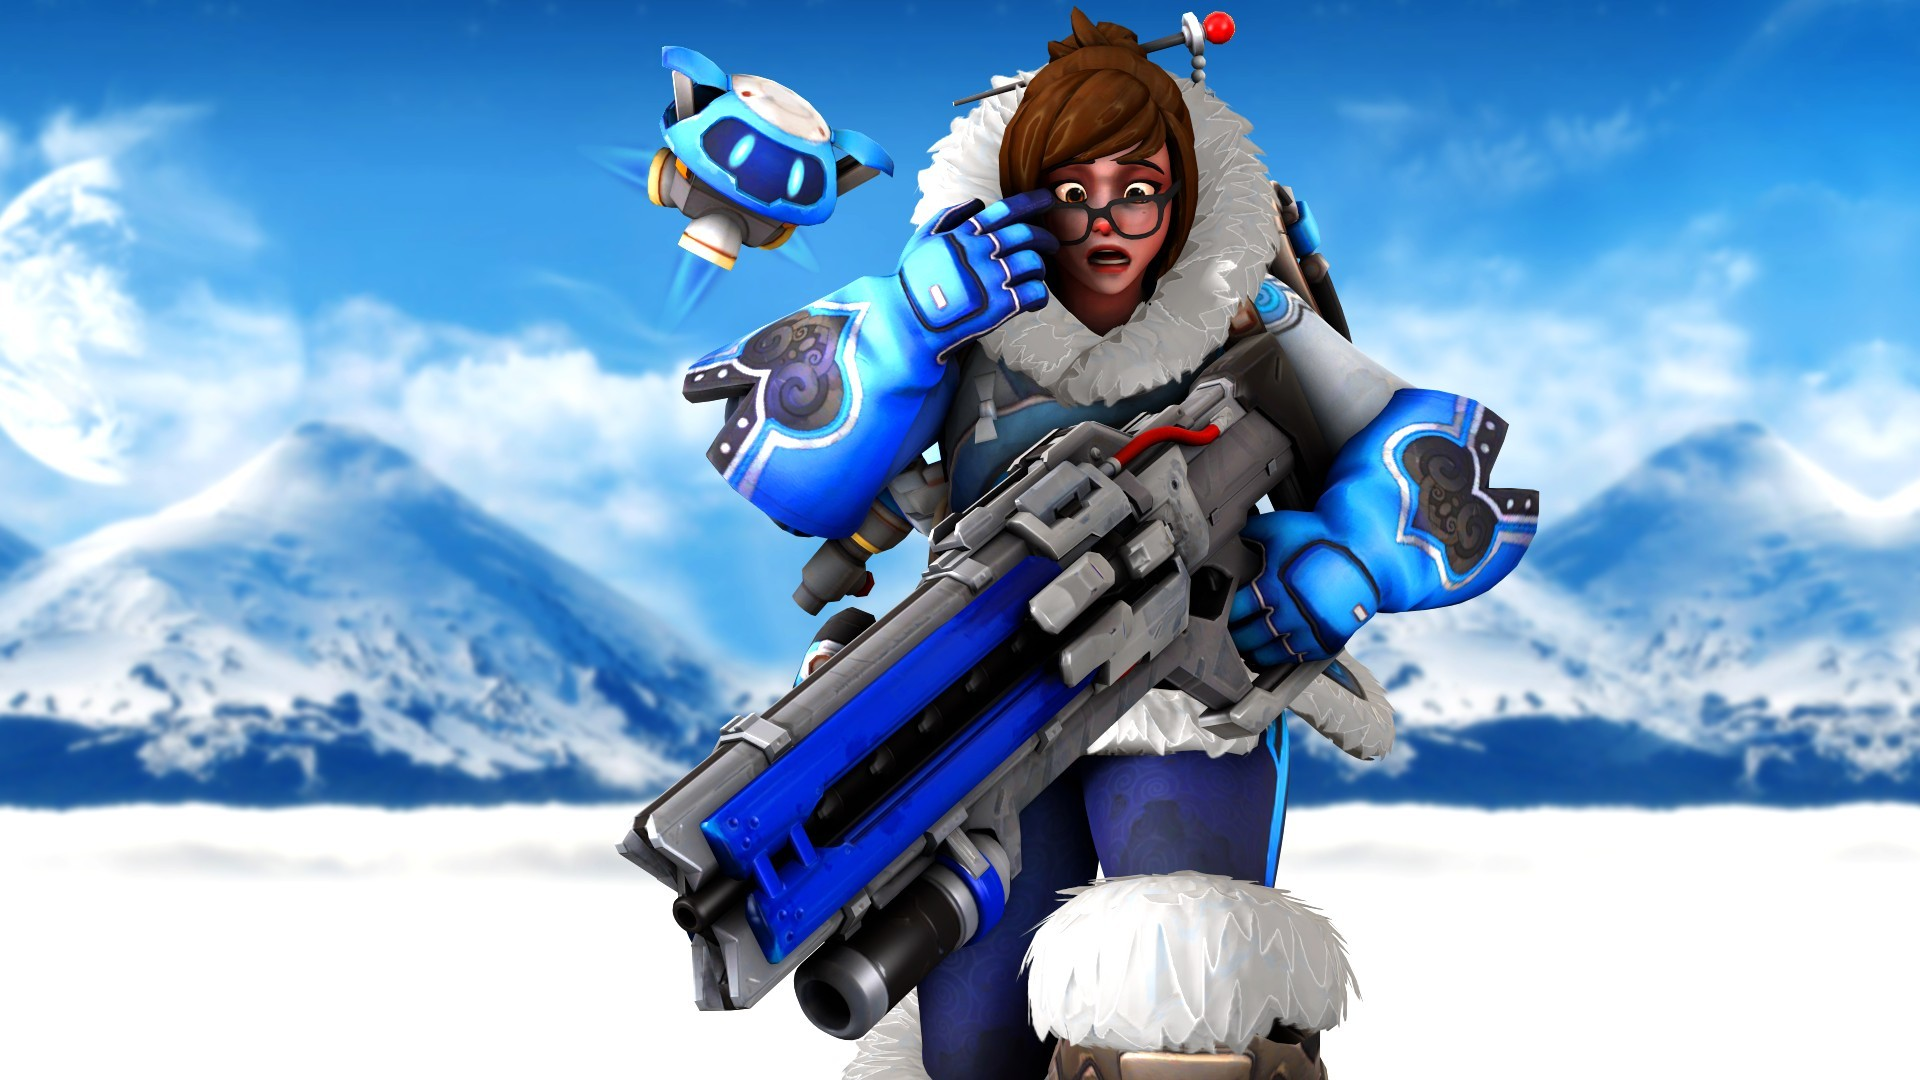 Mei overwatch wallpapers 70 background pictures - Overwatch christmas wallpaper ...